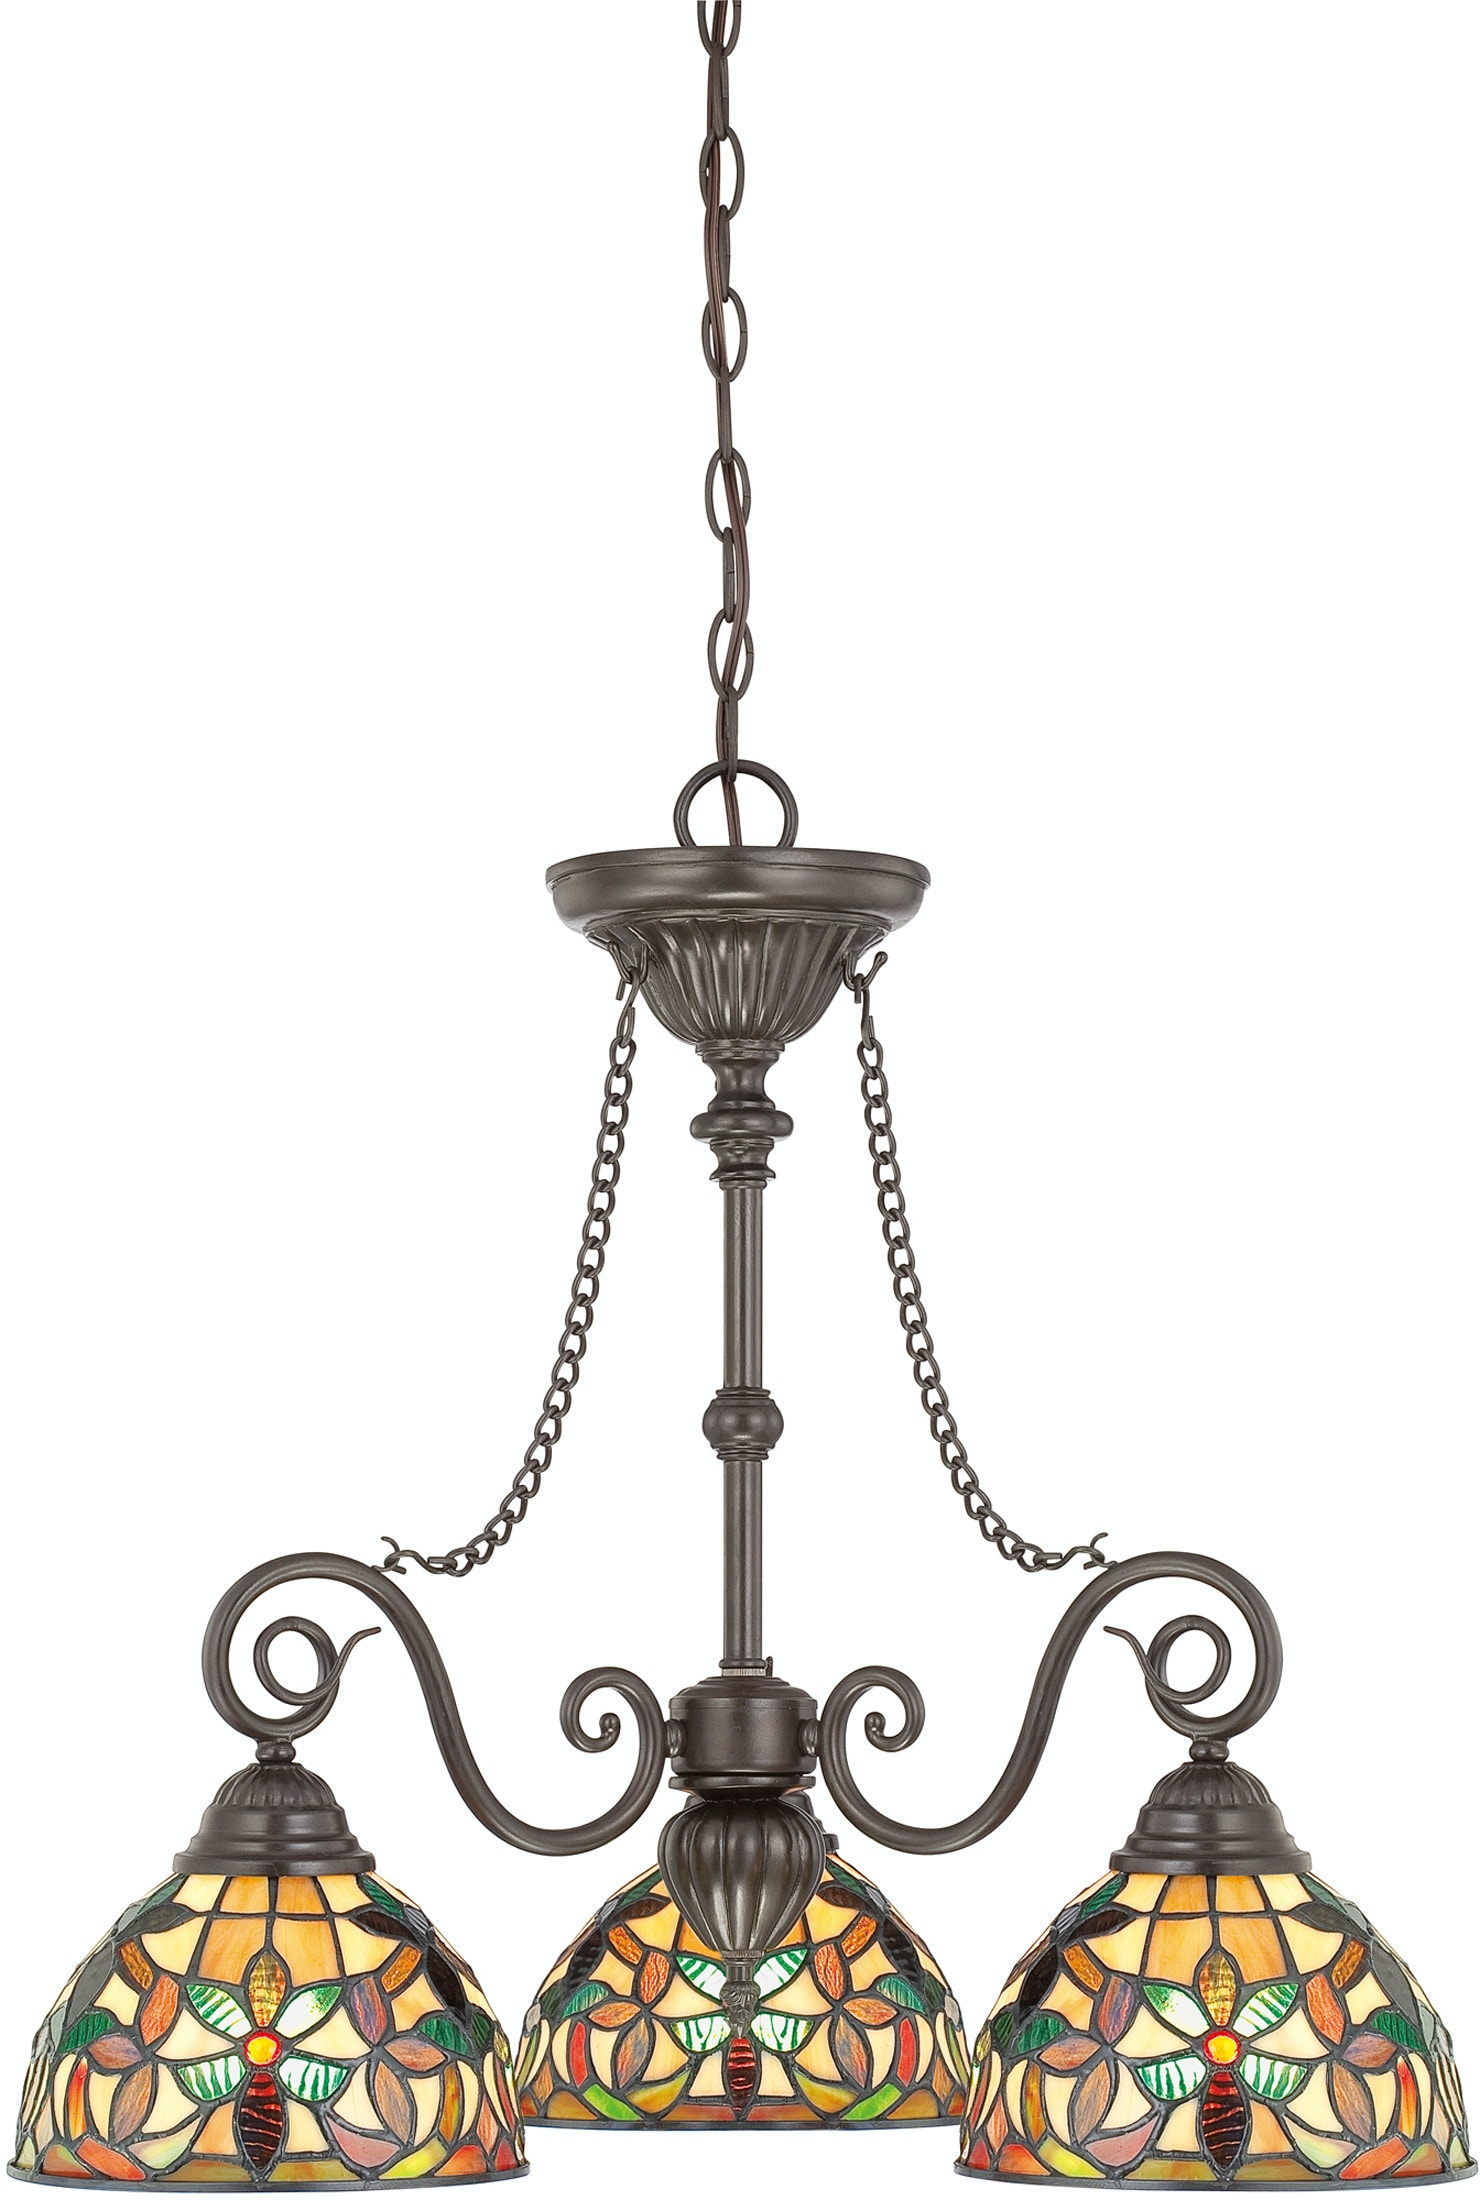 Quoizel Lamps And Lighting Dinette Chandelier Tfkm5103vb